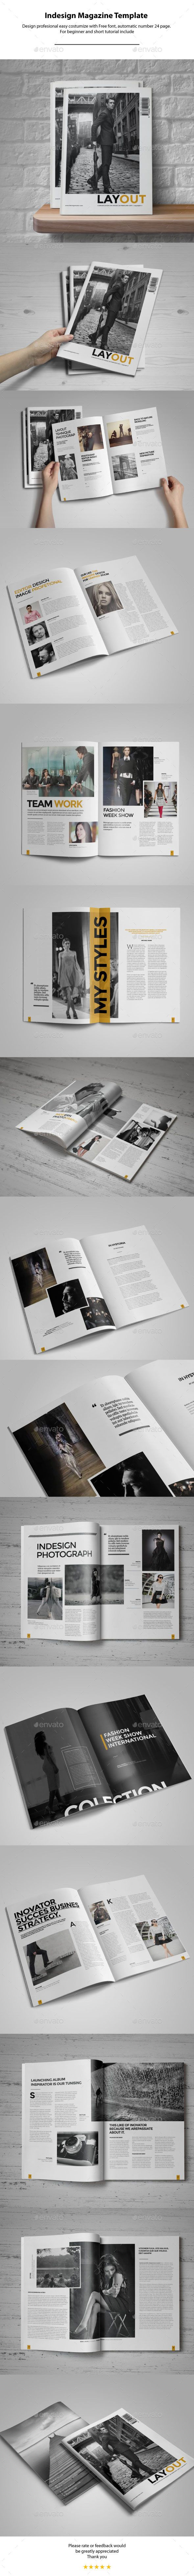 Indesign Magazine Template — InDesign INDD #template #newsletter • Available here → https://graphicriver.net/item/indesign-magazine-template/11016212?ref=pxcr